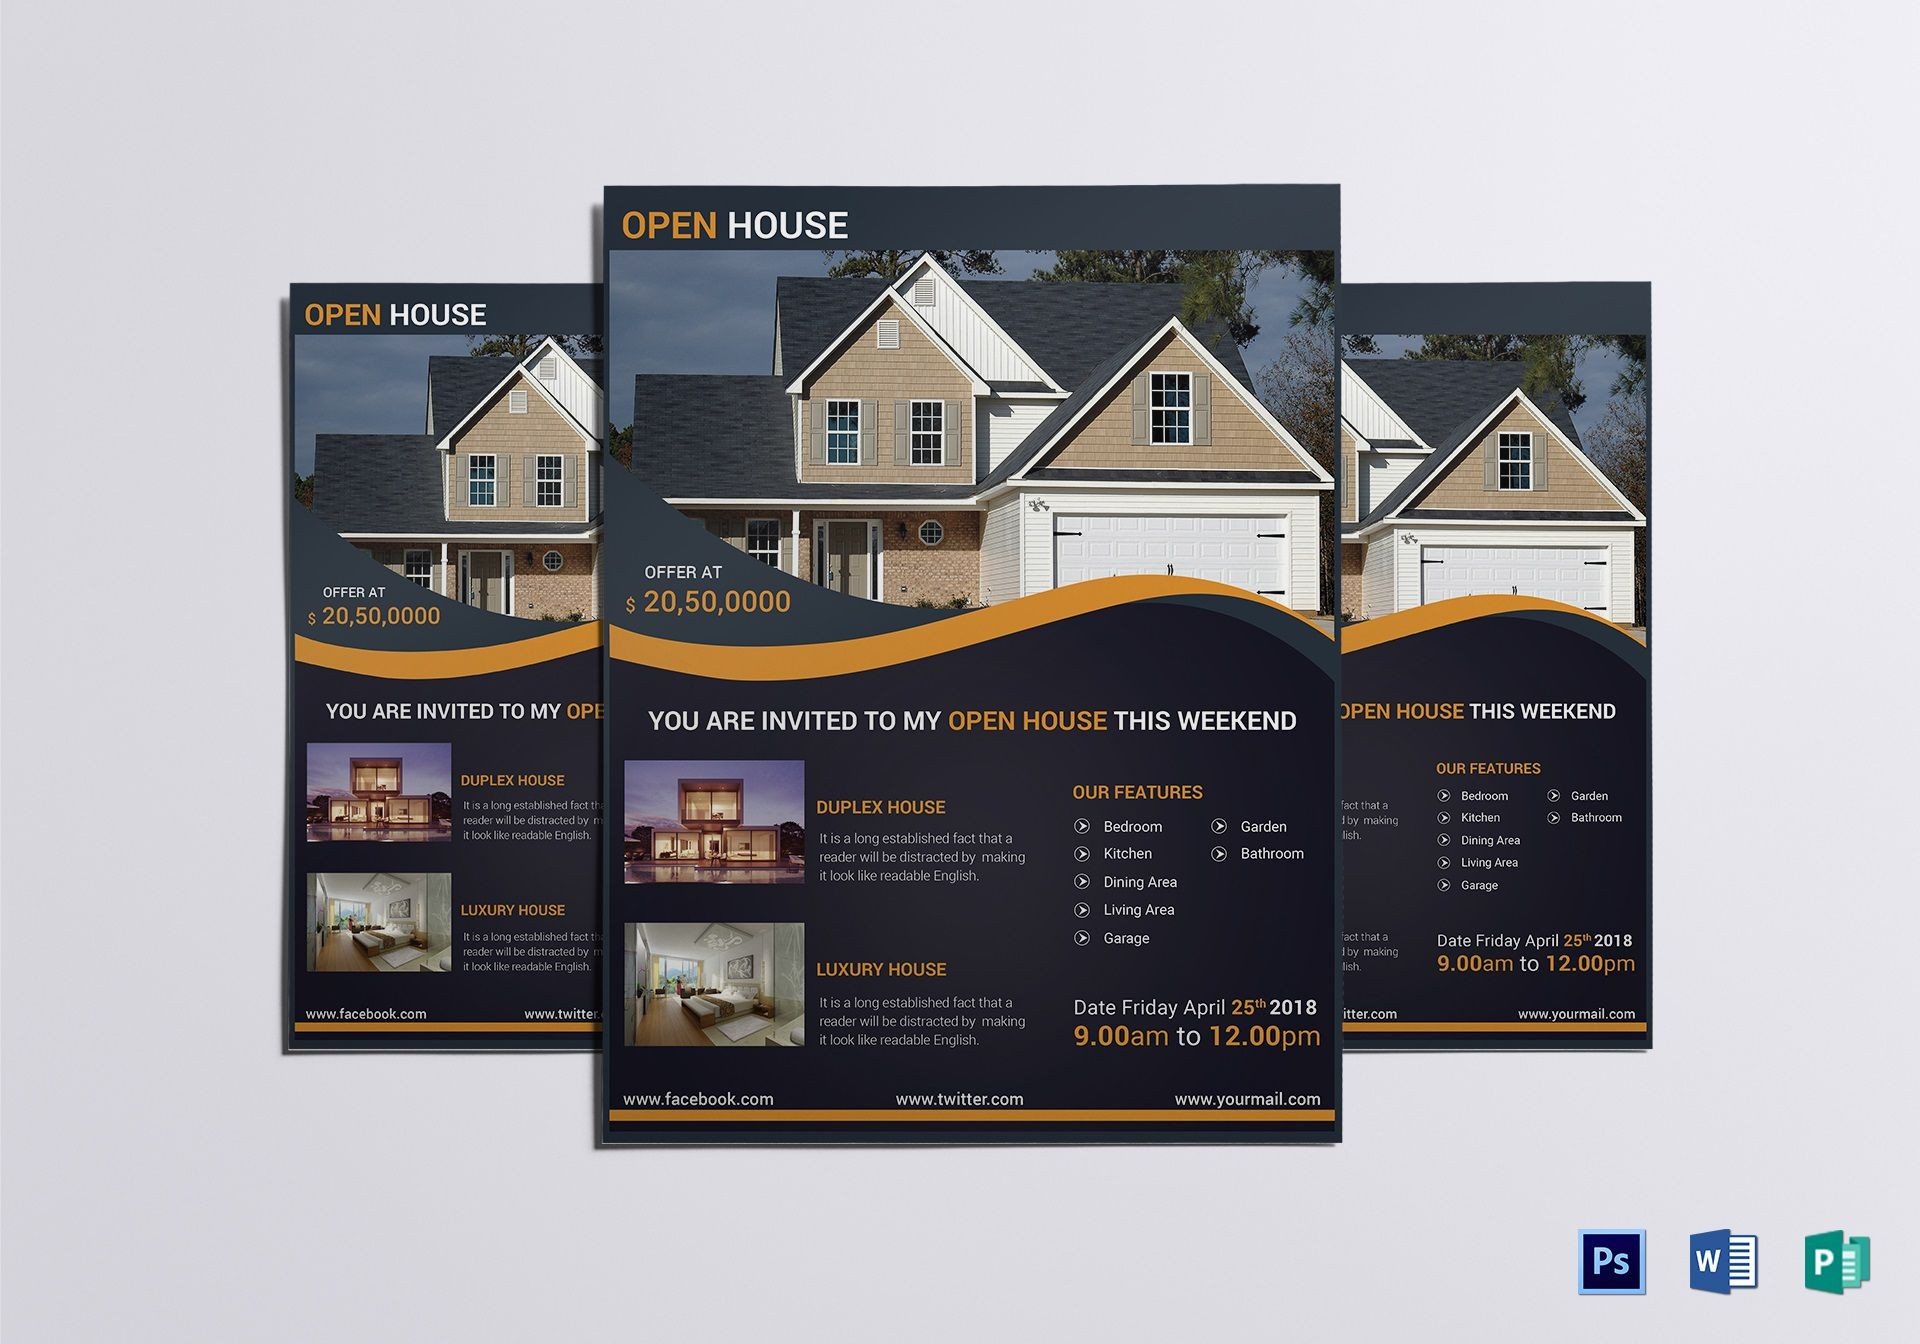 005 Sensational Open House Flyer Template Word Sample  Free Microsoft School1920